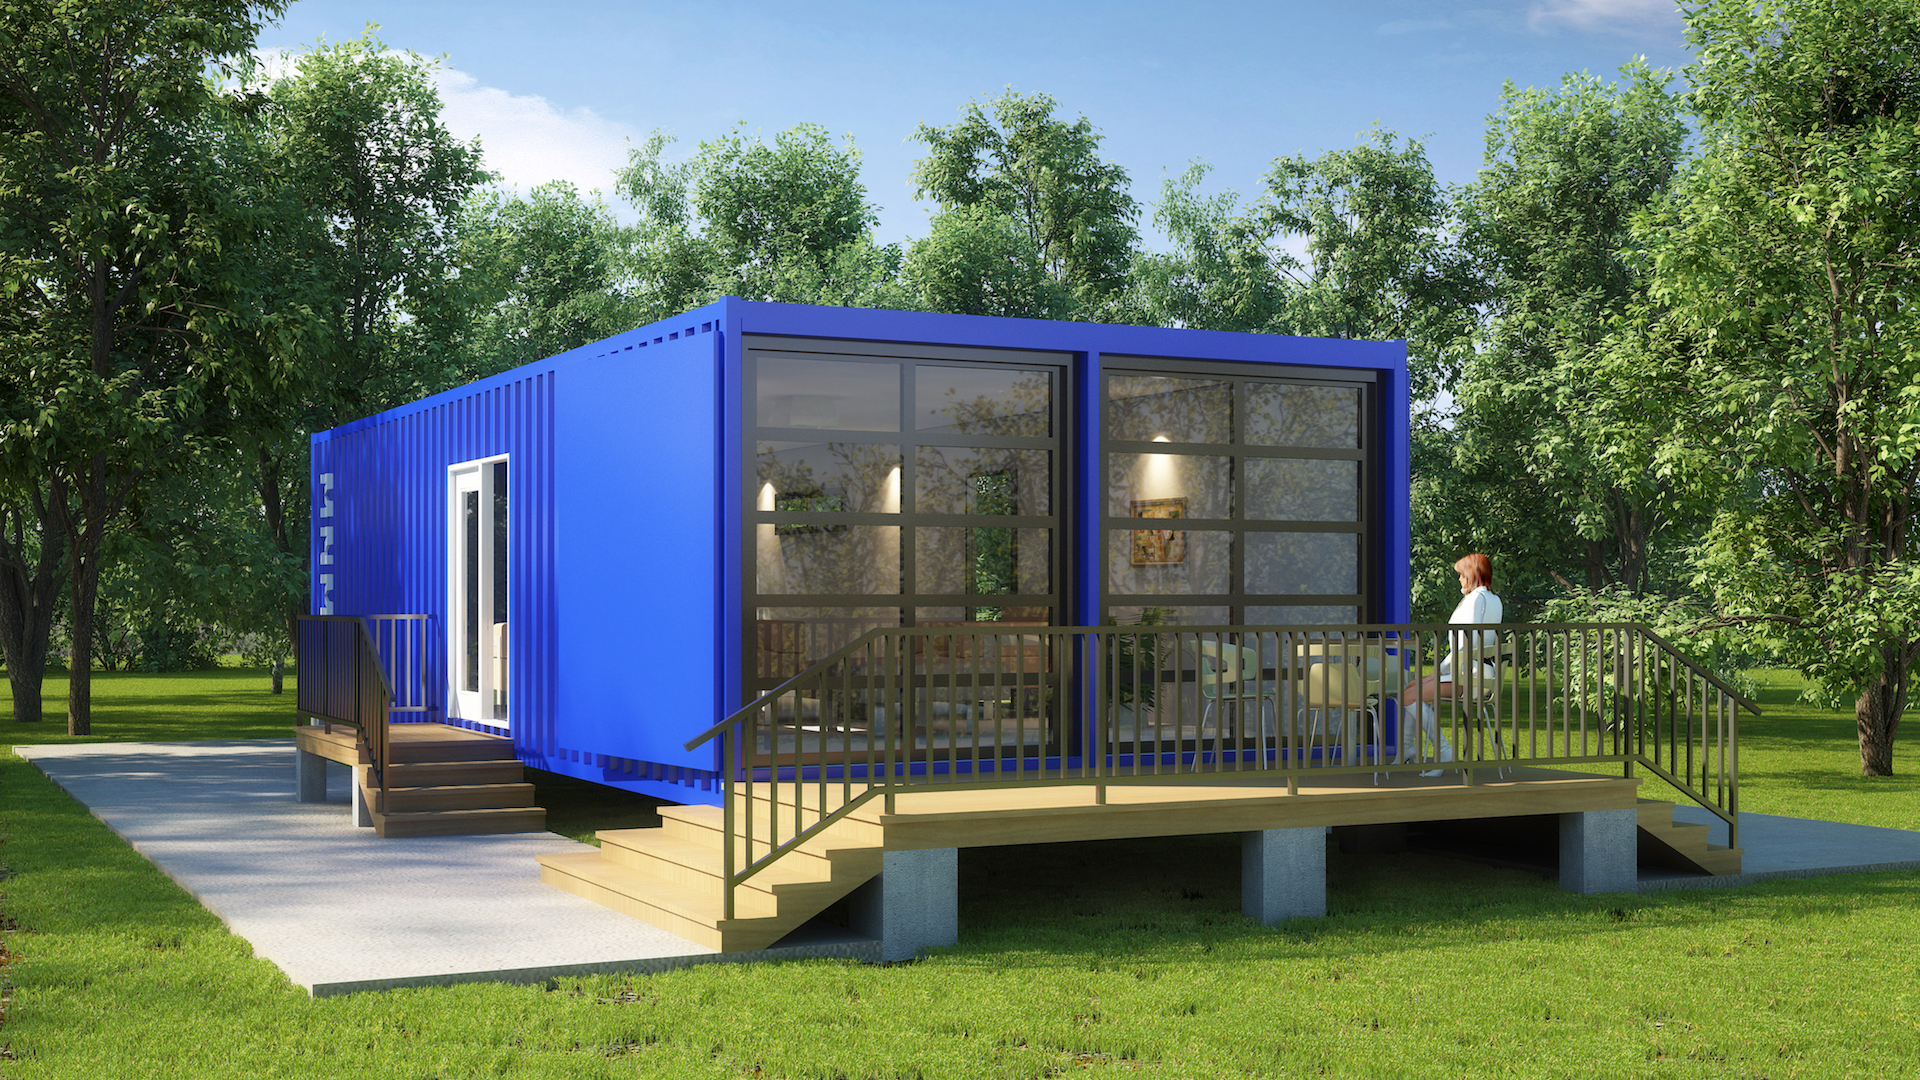 Metal Container Home Design-01 | Myles Nelson McKenzie Design on yurts designs, container home videos, container home info, container home layouts, container house, mobile home designs, wooden house designs, 12 foot house designs, container home plans, small home designs, container home bedrooms, barn home designs, container home blueprints, pallet home designs, container home roof, container home siding, cheap home designs, container home mansion, container hotels, container home interior,